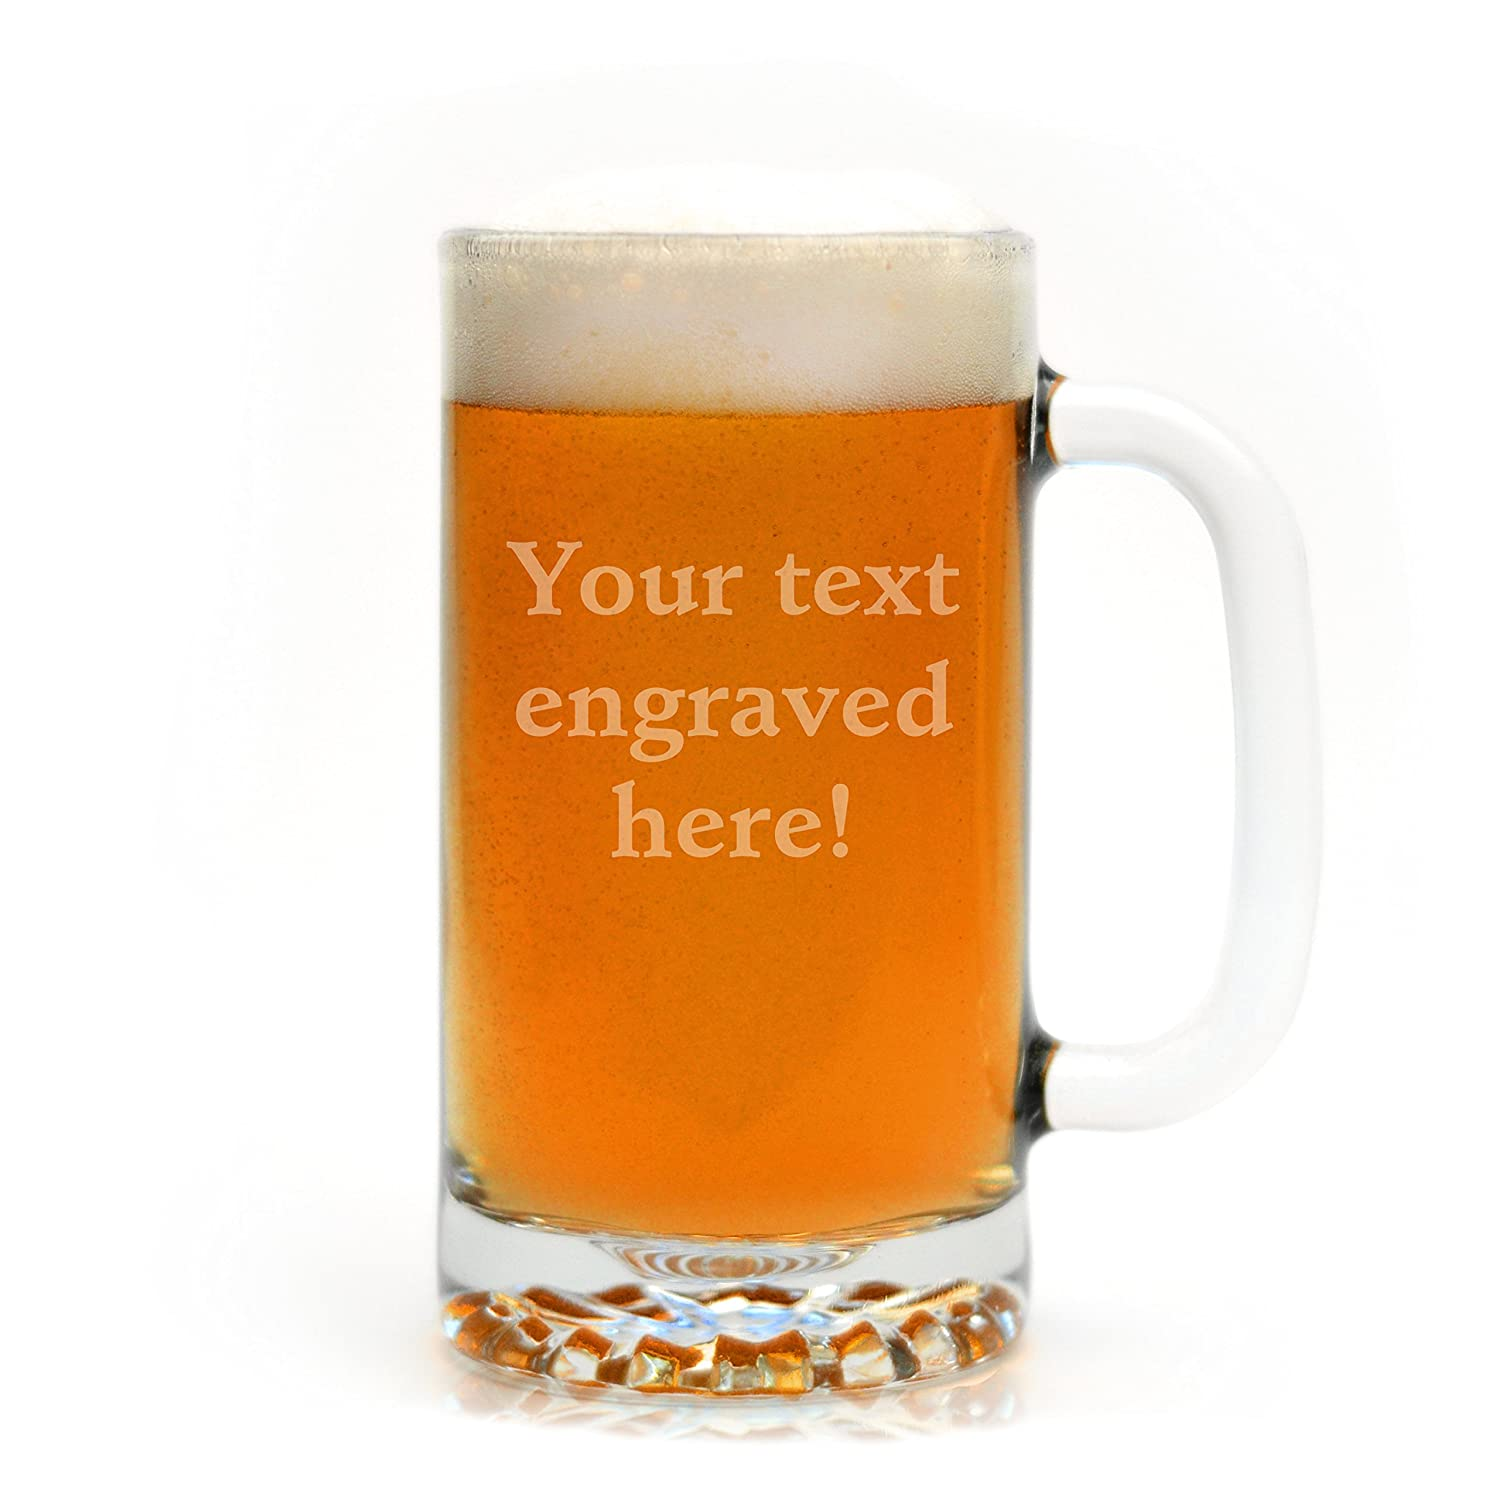 Personalized 16 oz. Beer Mug Engraved with Your Custom Text Glass With a Twist GWAT-C-SM-MYO-1